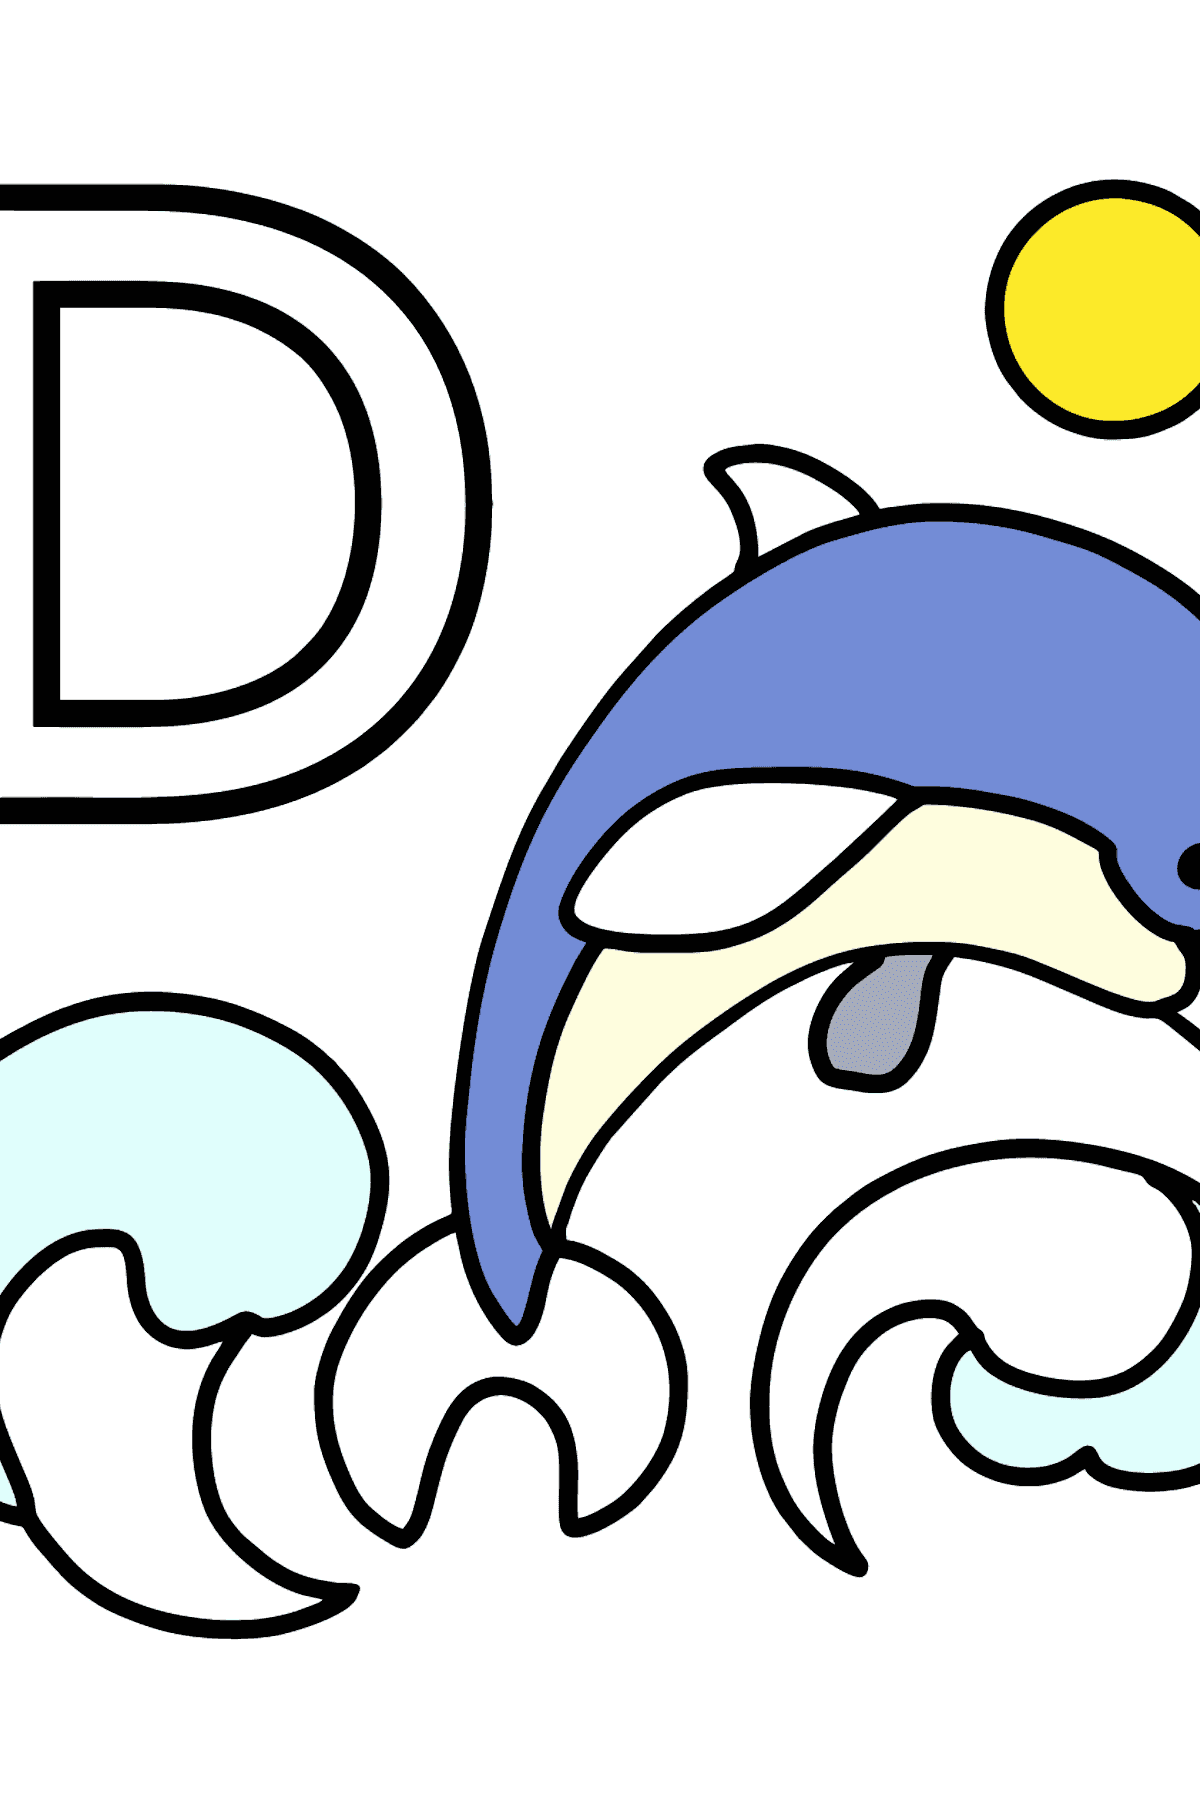 French Letter D coloring pages - DAUPHIN - Coloring Pages for Kids